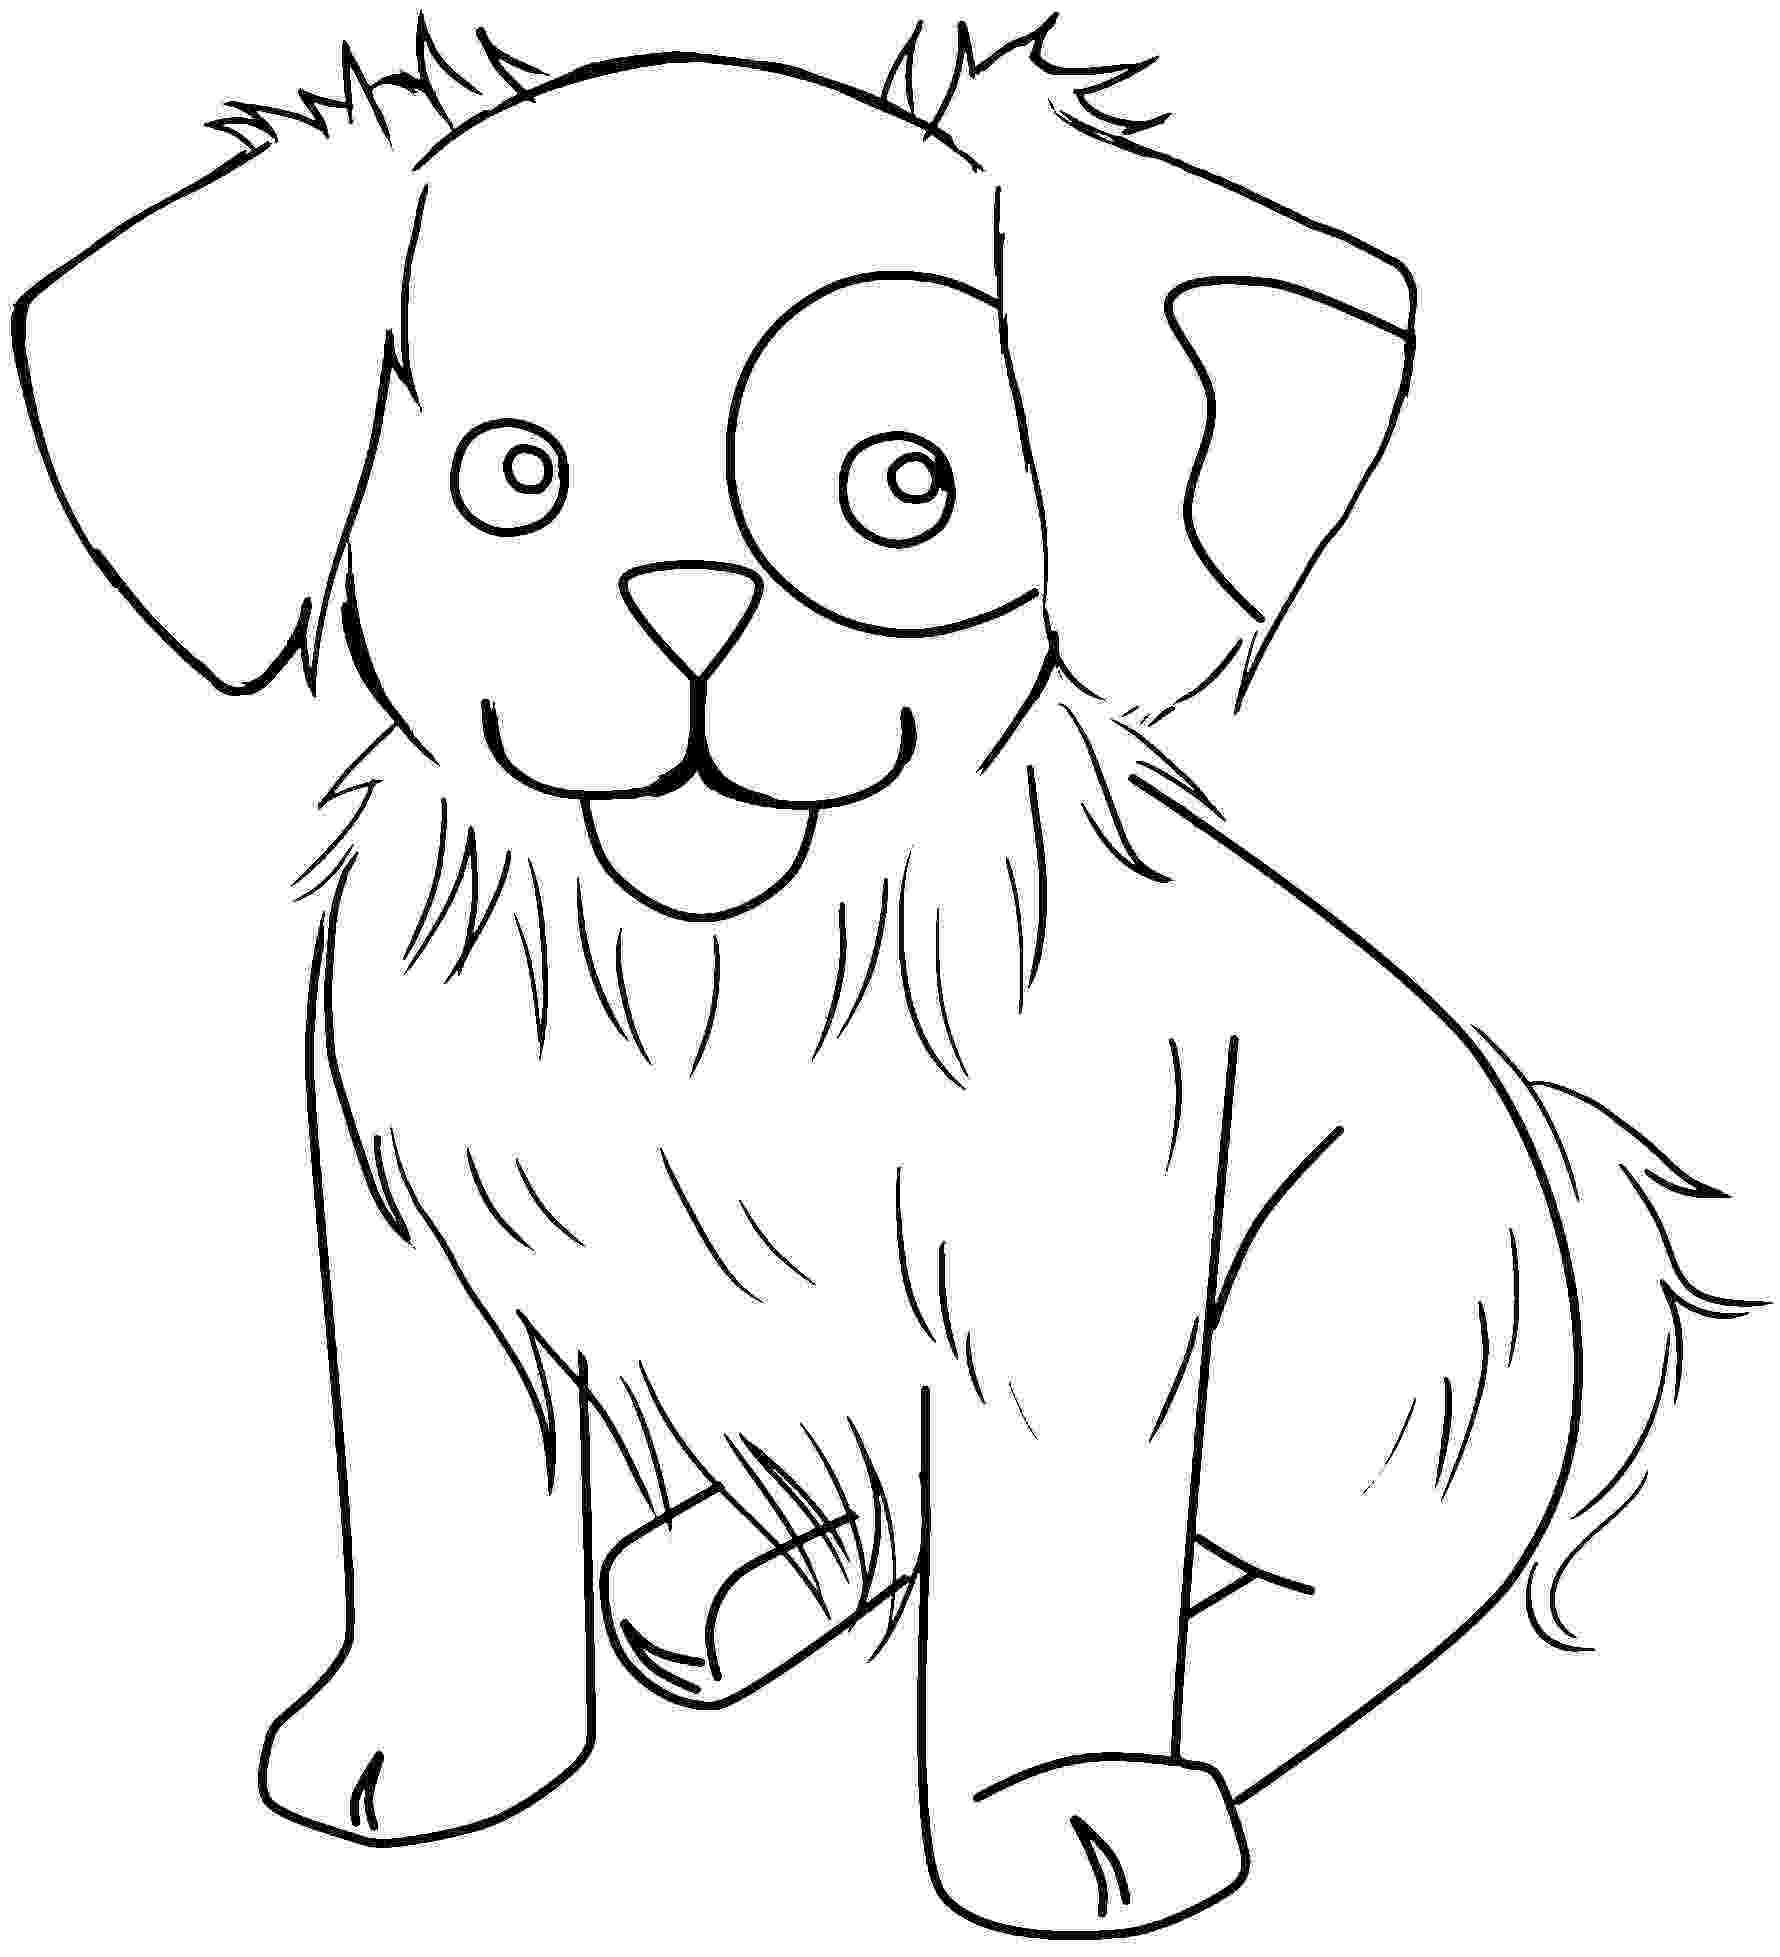 free animal coloring pages free printable cute animal coloring pages coloring home pages free animal coloring